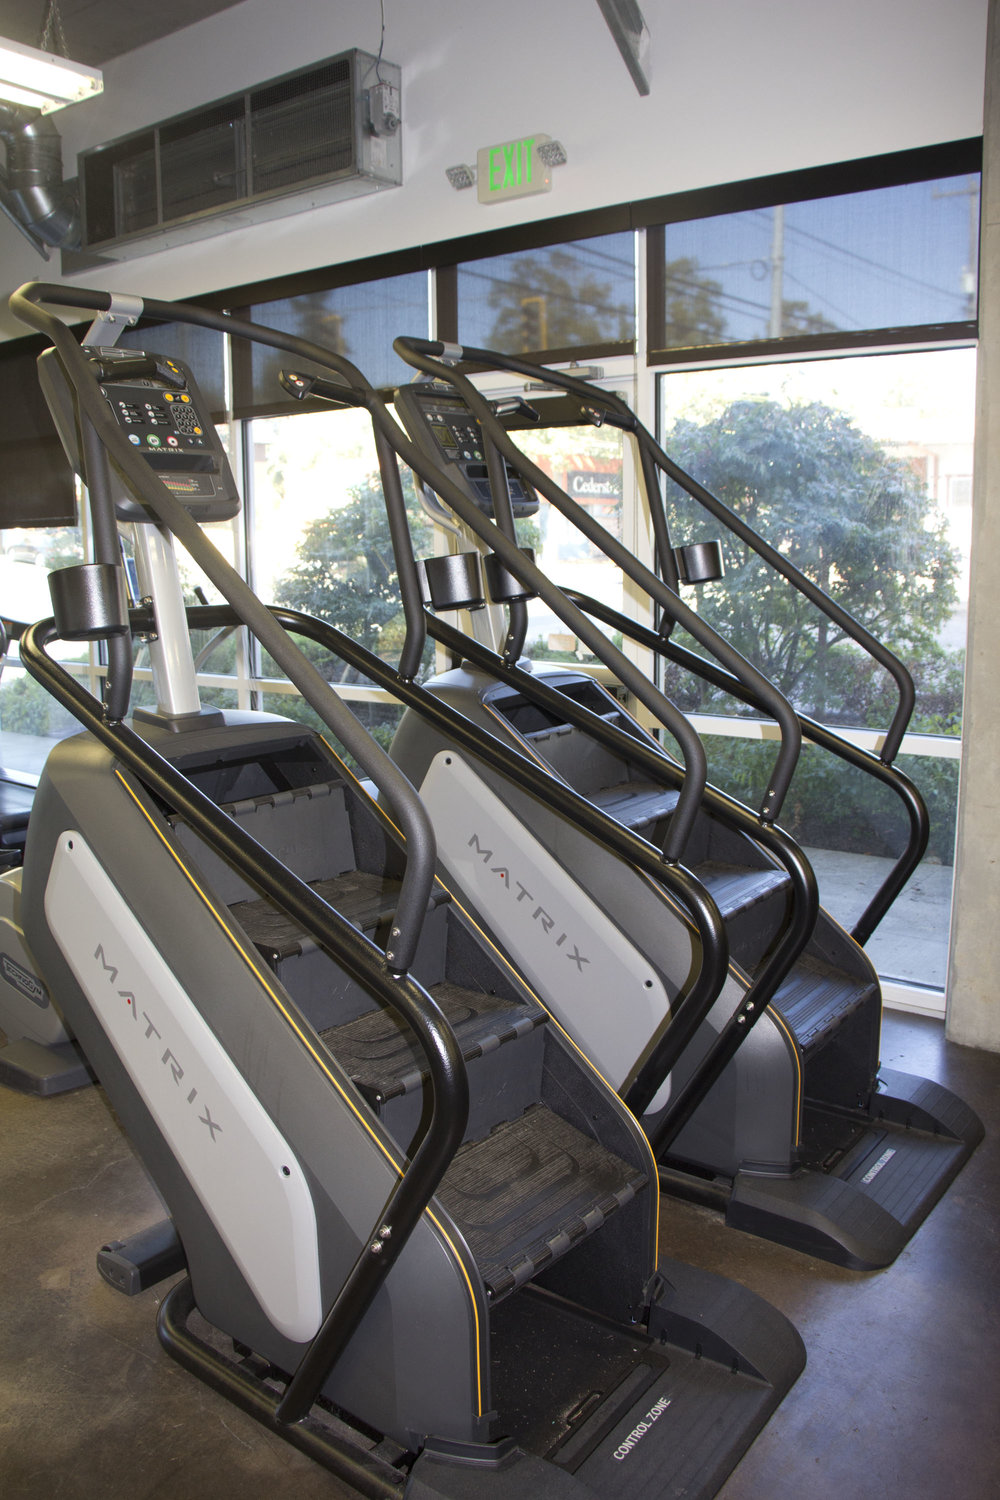 Step Up on Stair Steppers - Whether you're training to hike in the Cascades or pushing your body to new heights of fitness, our stair stepper machines will help you get there!